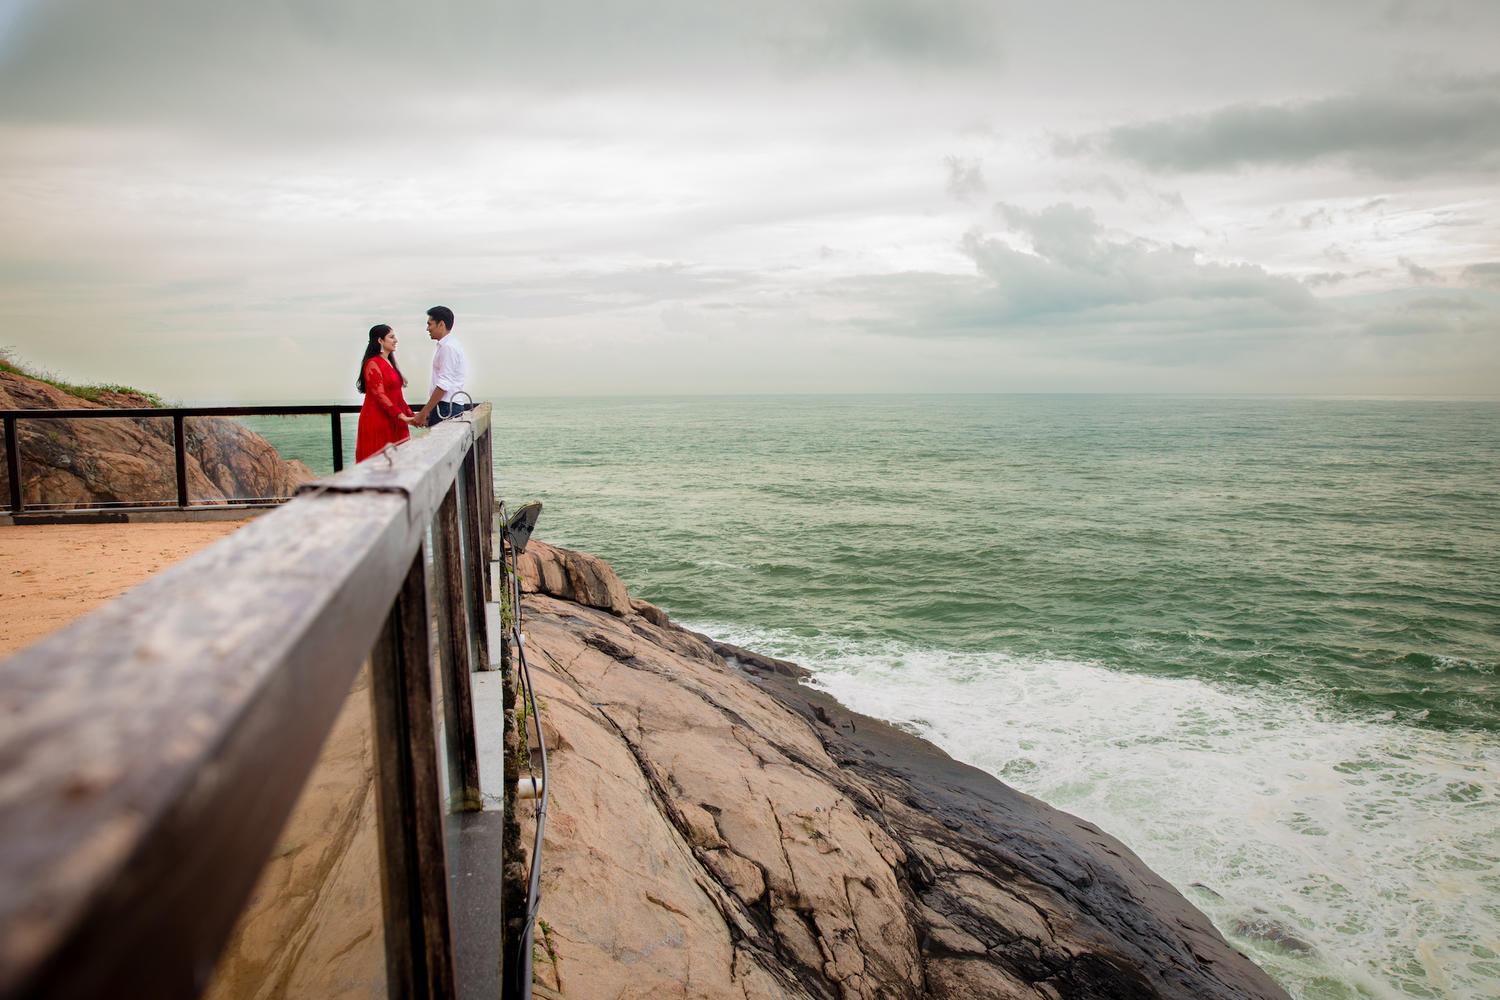 Prewedding Kerala Kovalam Backwaters destination wedding